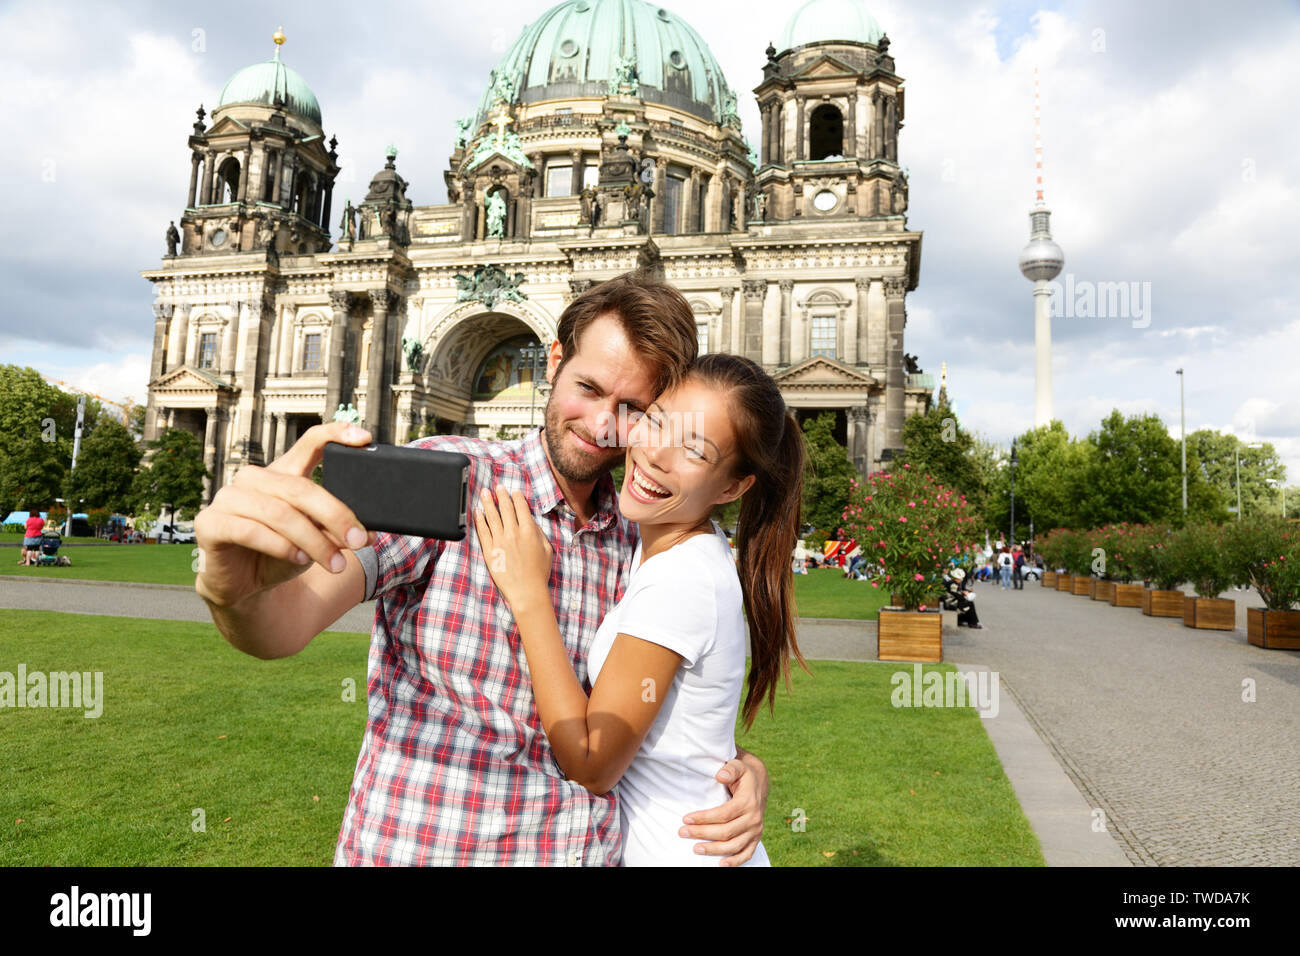 Berlin Germany travel couple selfie self portrait. Happy tourists people in front of Berlin Cathedral / Berliner Dom with Fernsehturm / Berlin TV Tower in the background. Asian woman, Caucasian man. Stock Photo